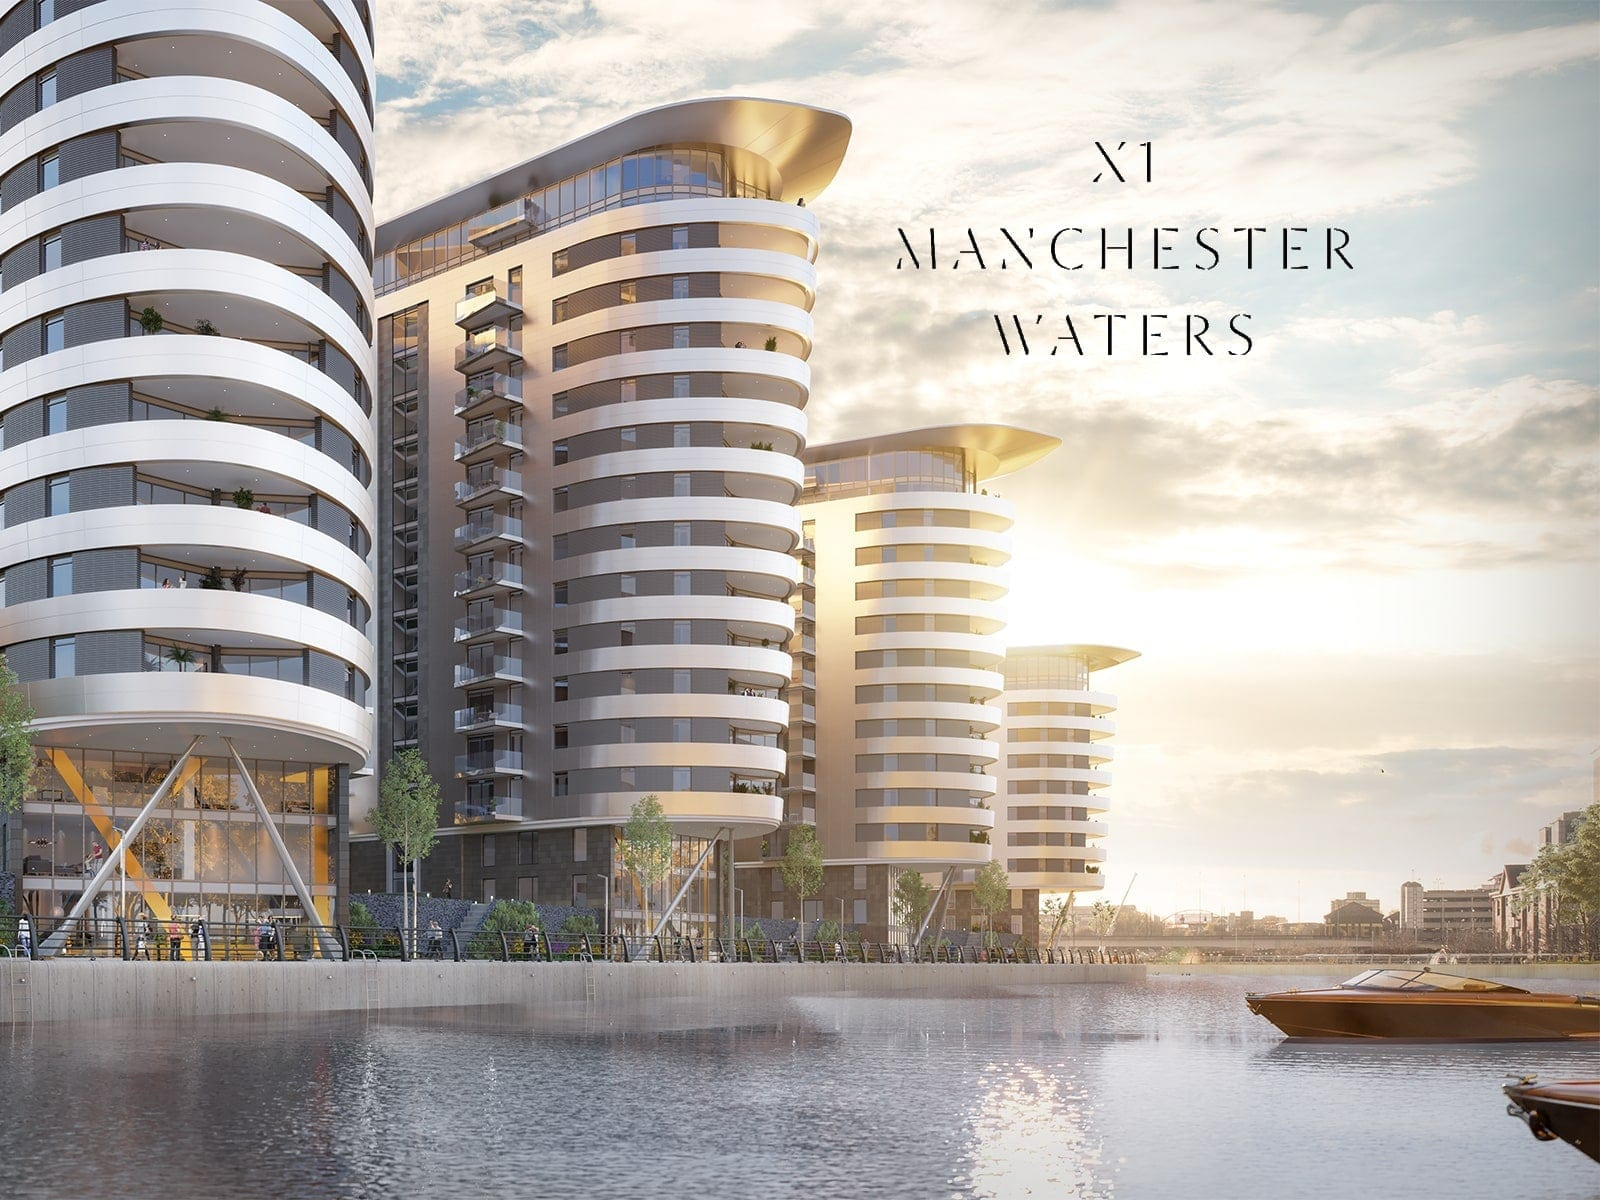 X1 Manchester Waters